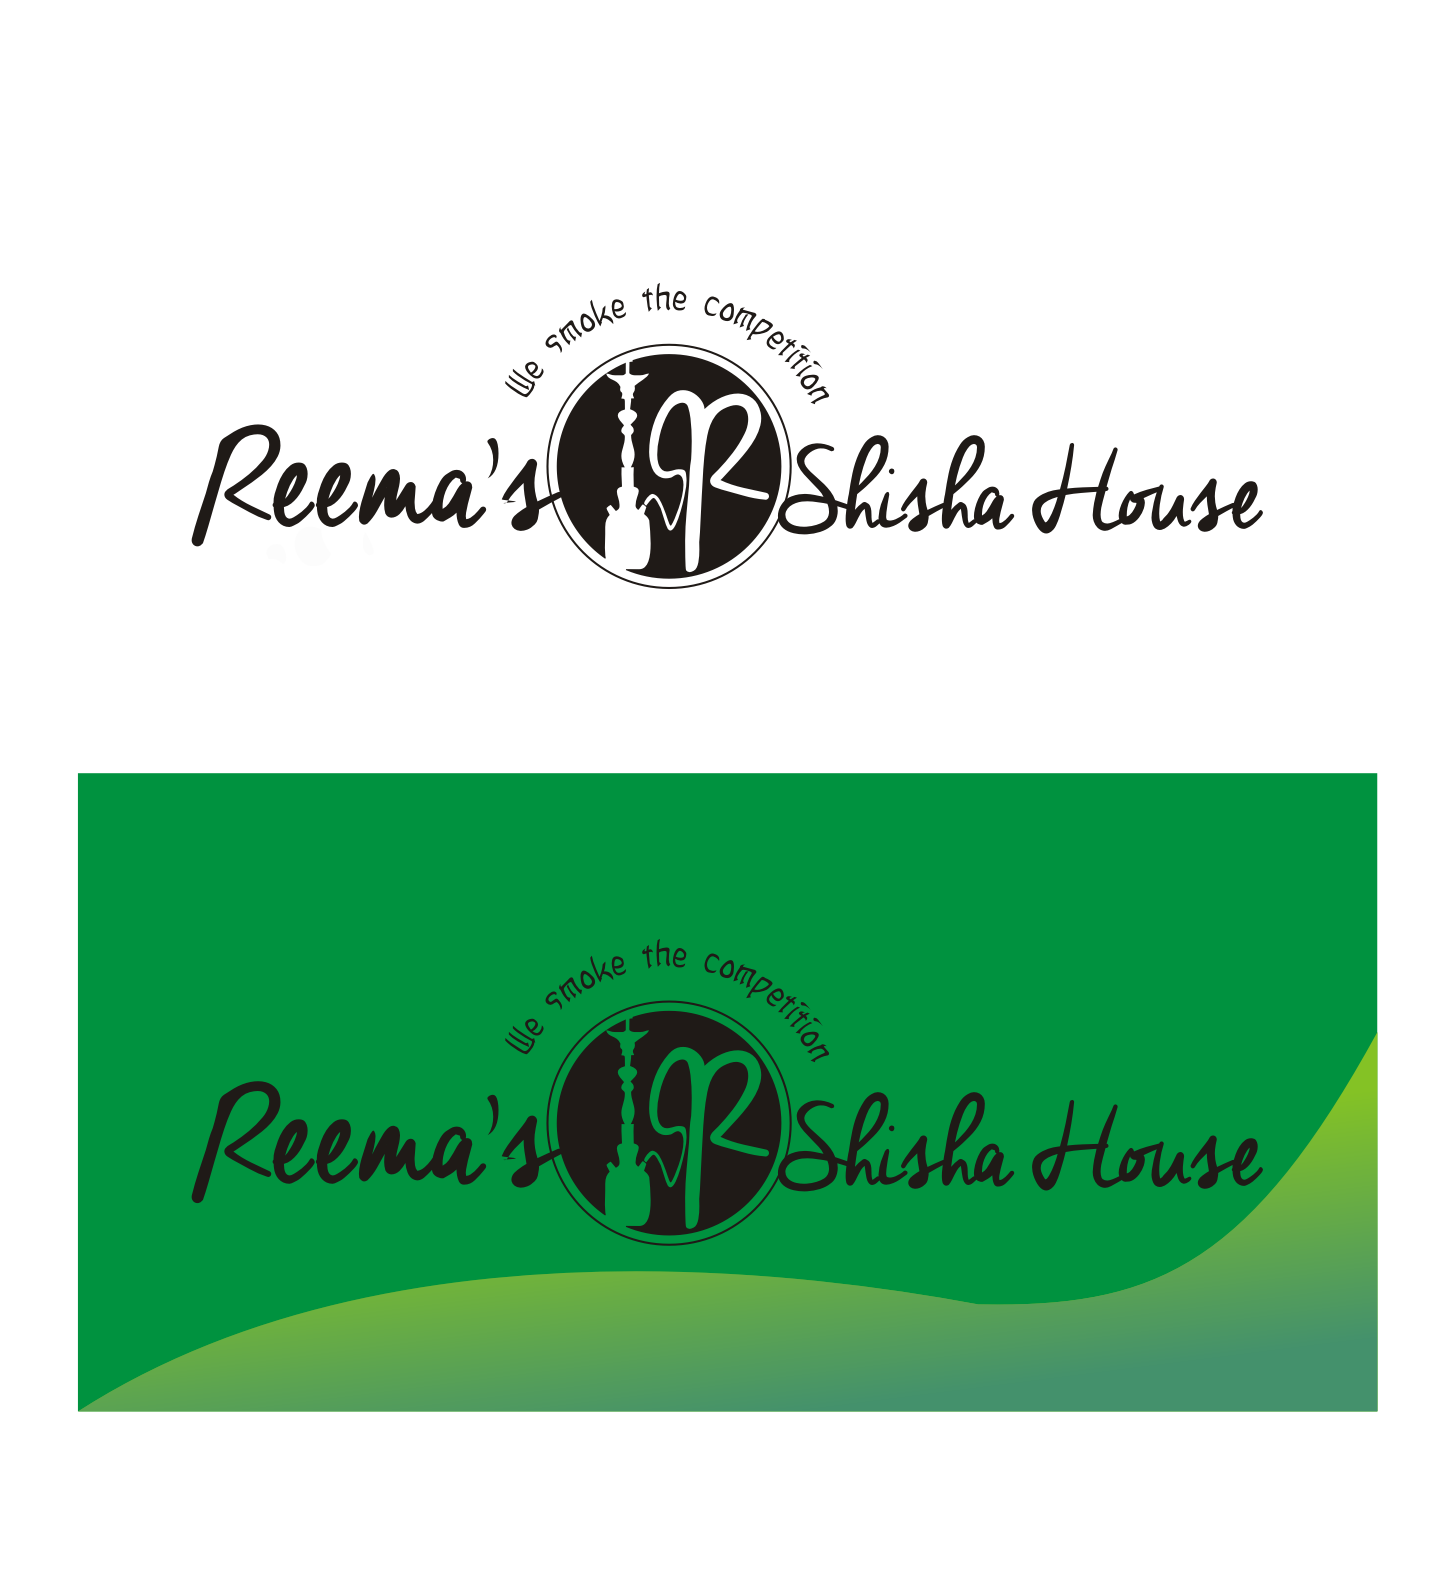 Logo Design by Nthus Nthis - Entry No. 11 in the Logo Design Contest Captivating Logo Design for Reema's Shisha House.